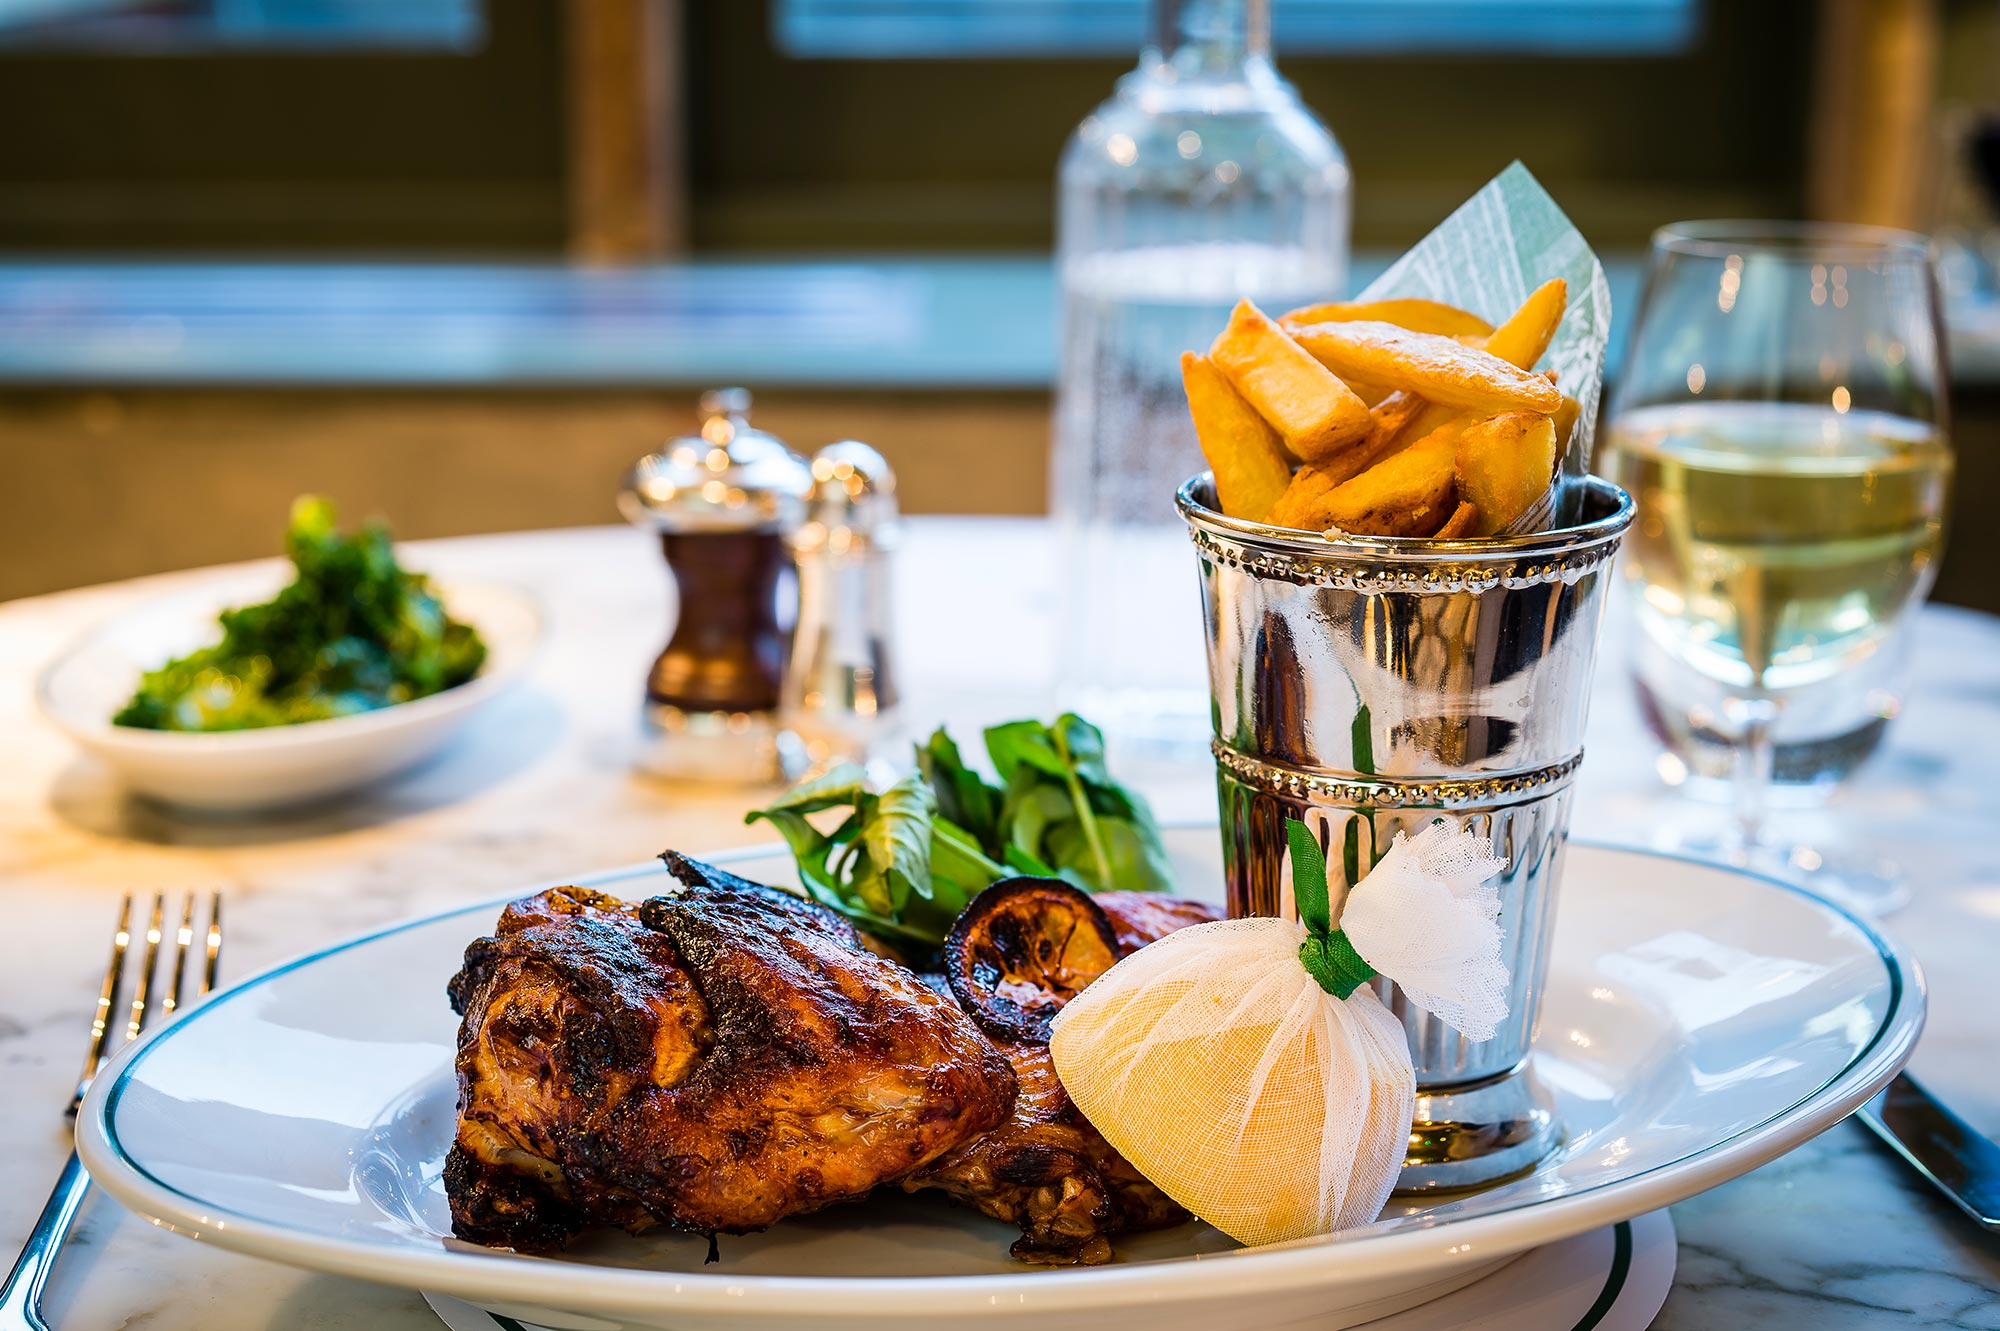 Chargrilled Banham half chicken at The Ivy Market Grill - The Ivy Market Grill